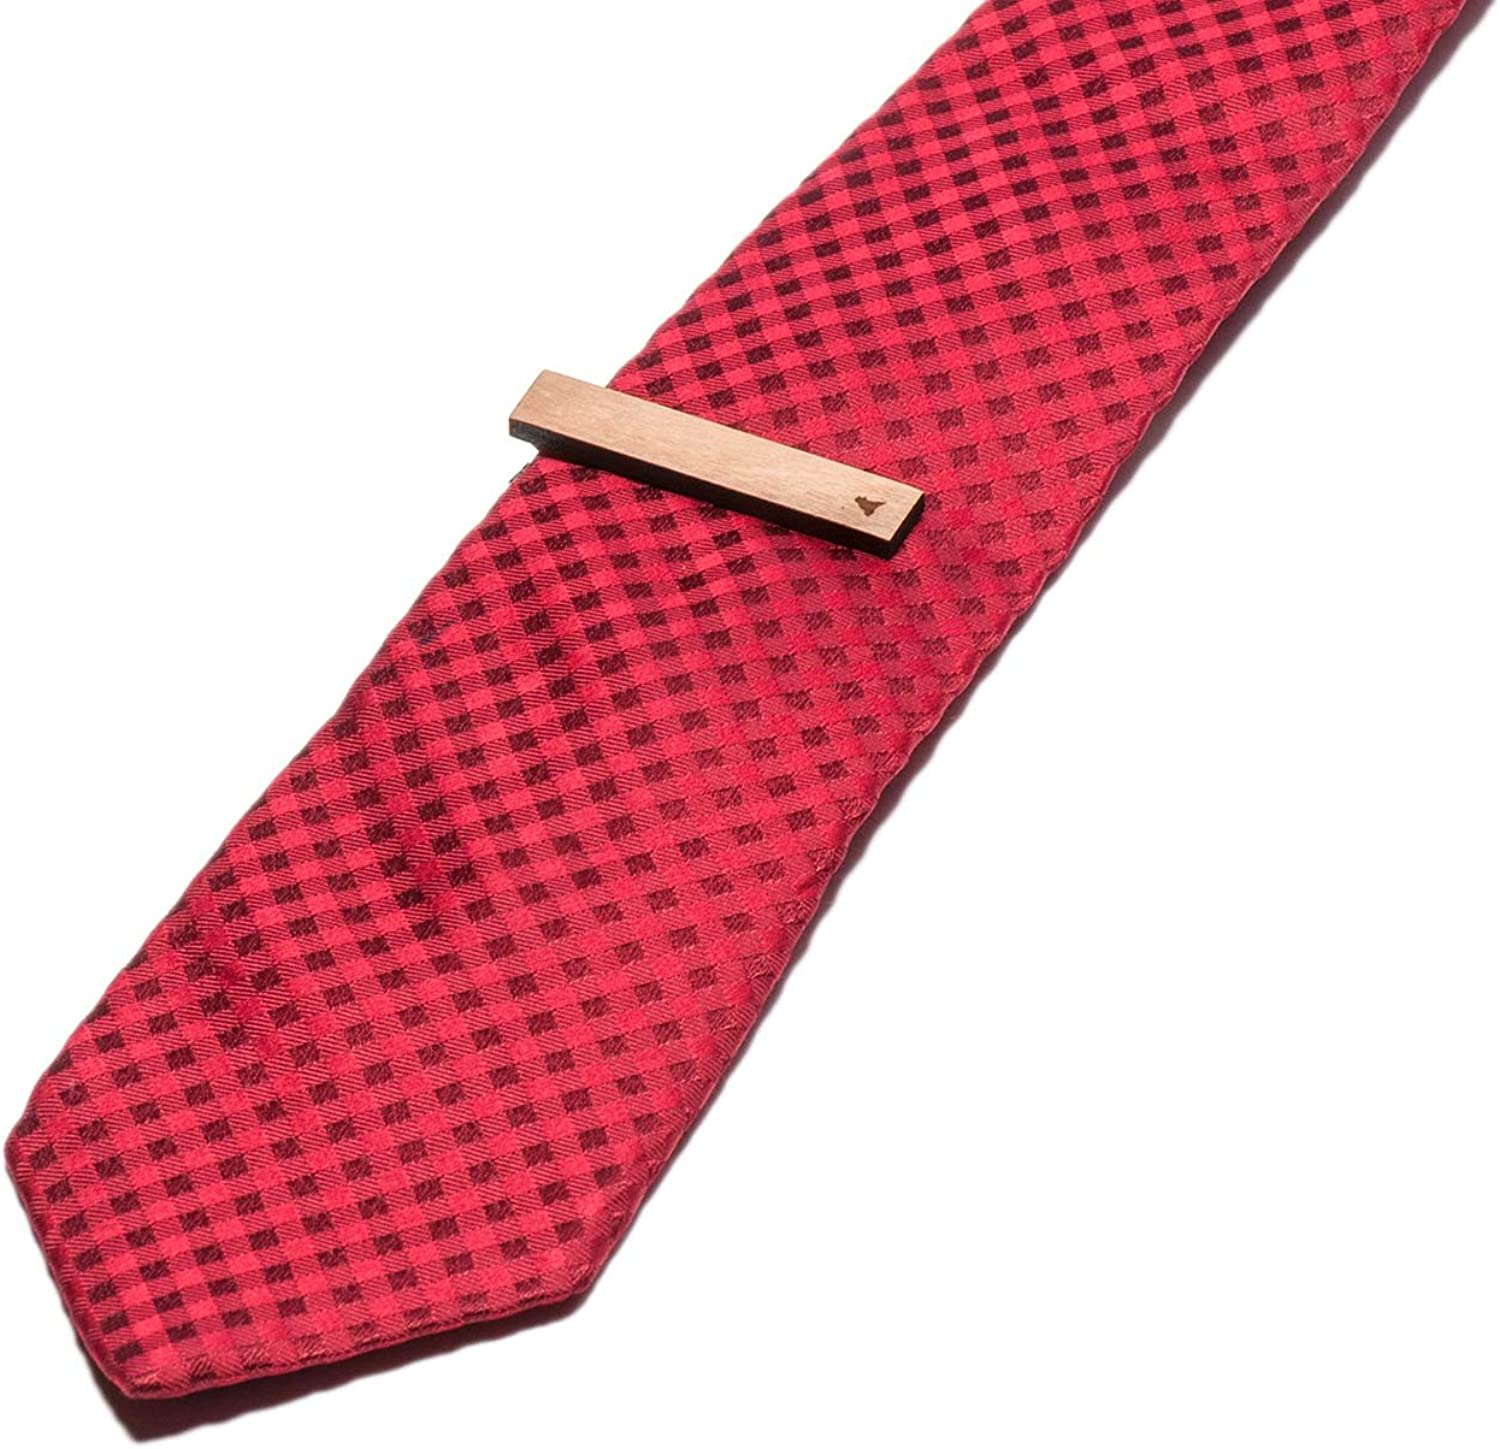 Wooden Accessories Company Wooden Tie Clips with Laser Engraved Sicily Design Cherry Wood Tie Bar Engraved in The USA